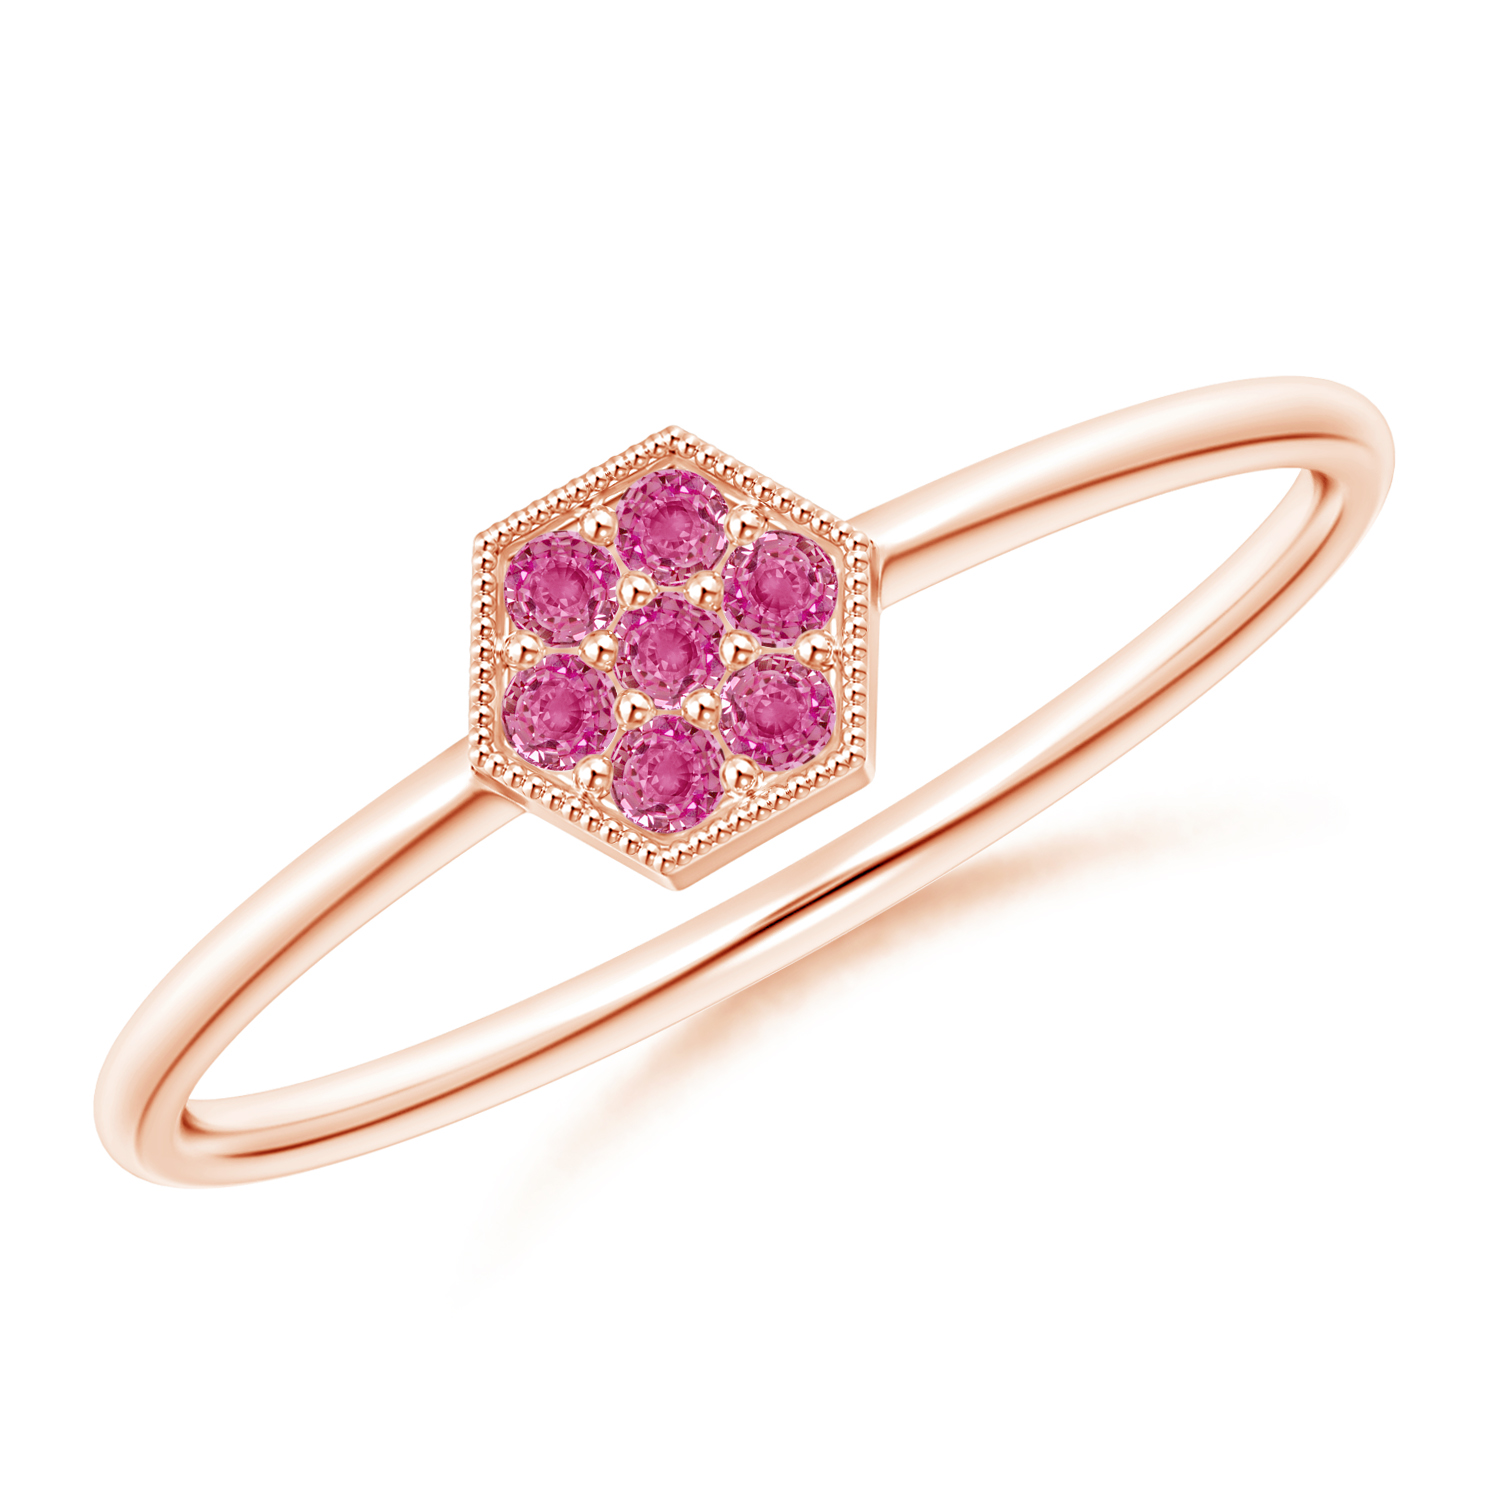 Hexagon-Shaped Pink Sapphire Cluster Ring with Milgrain - Angara.com